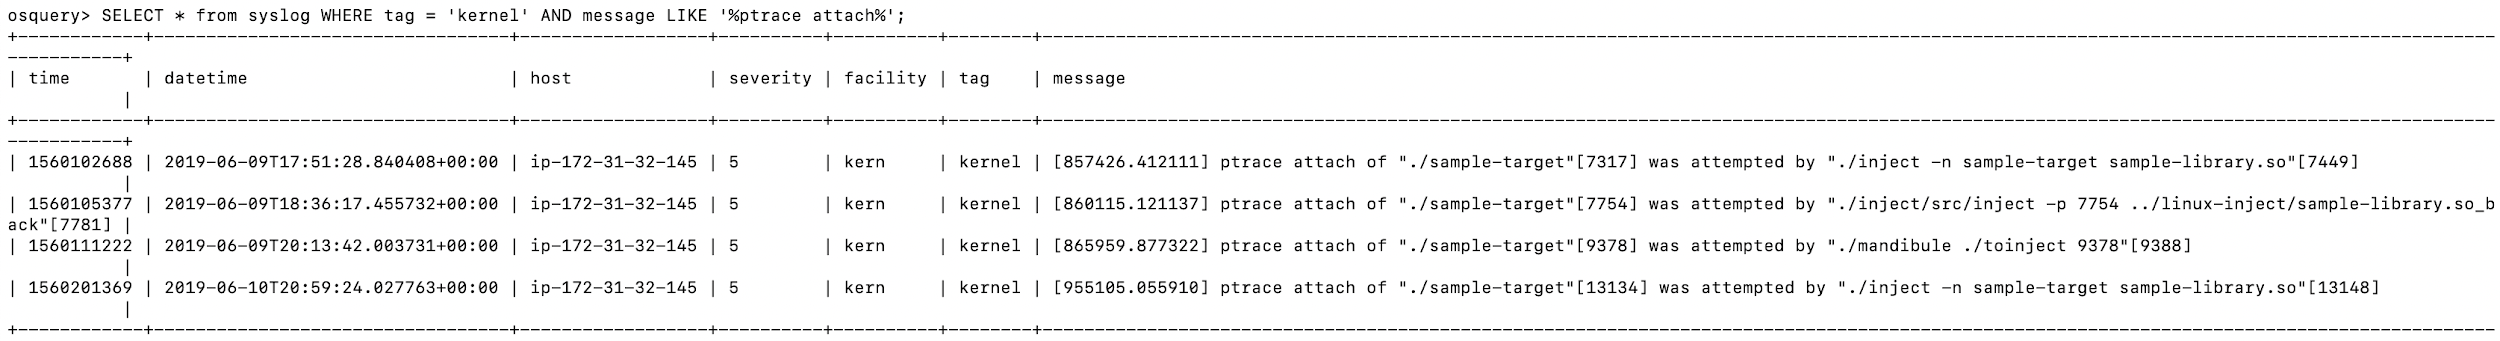 monitor specific syslog